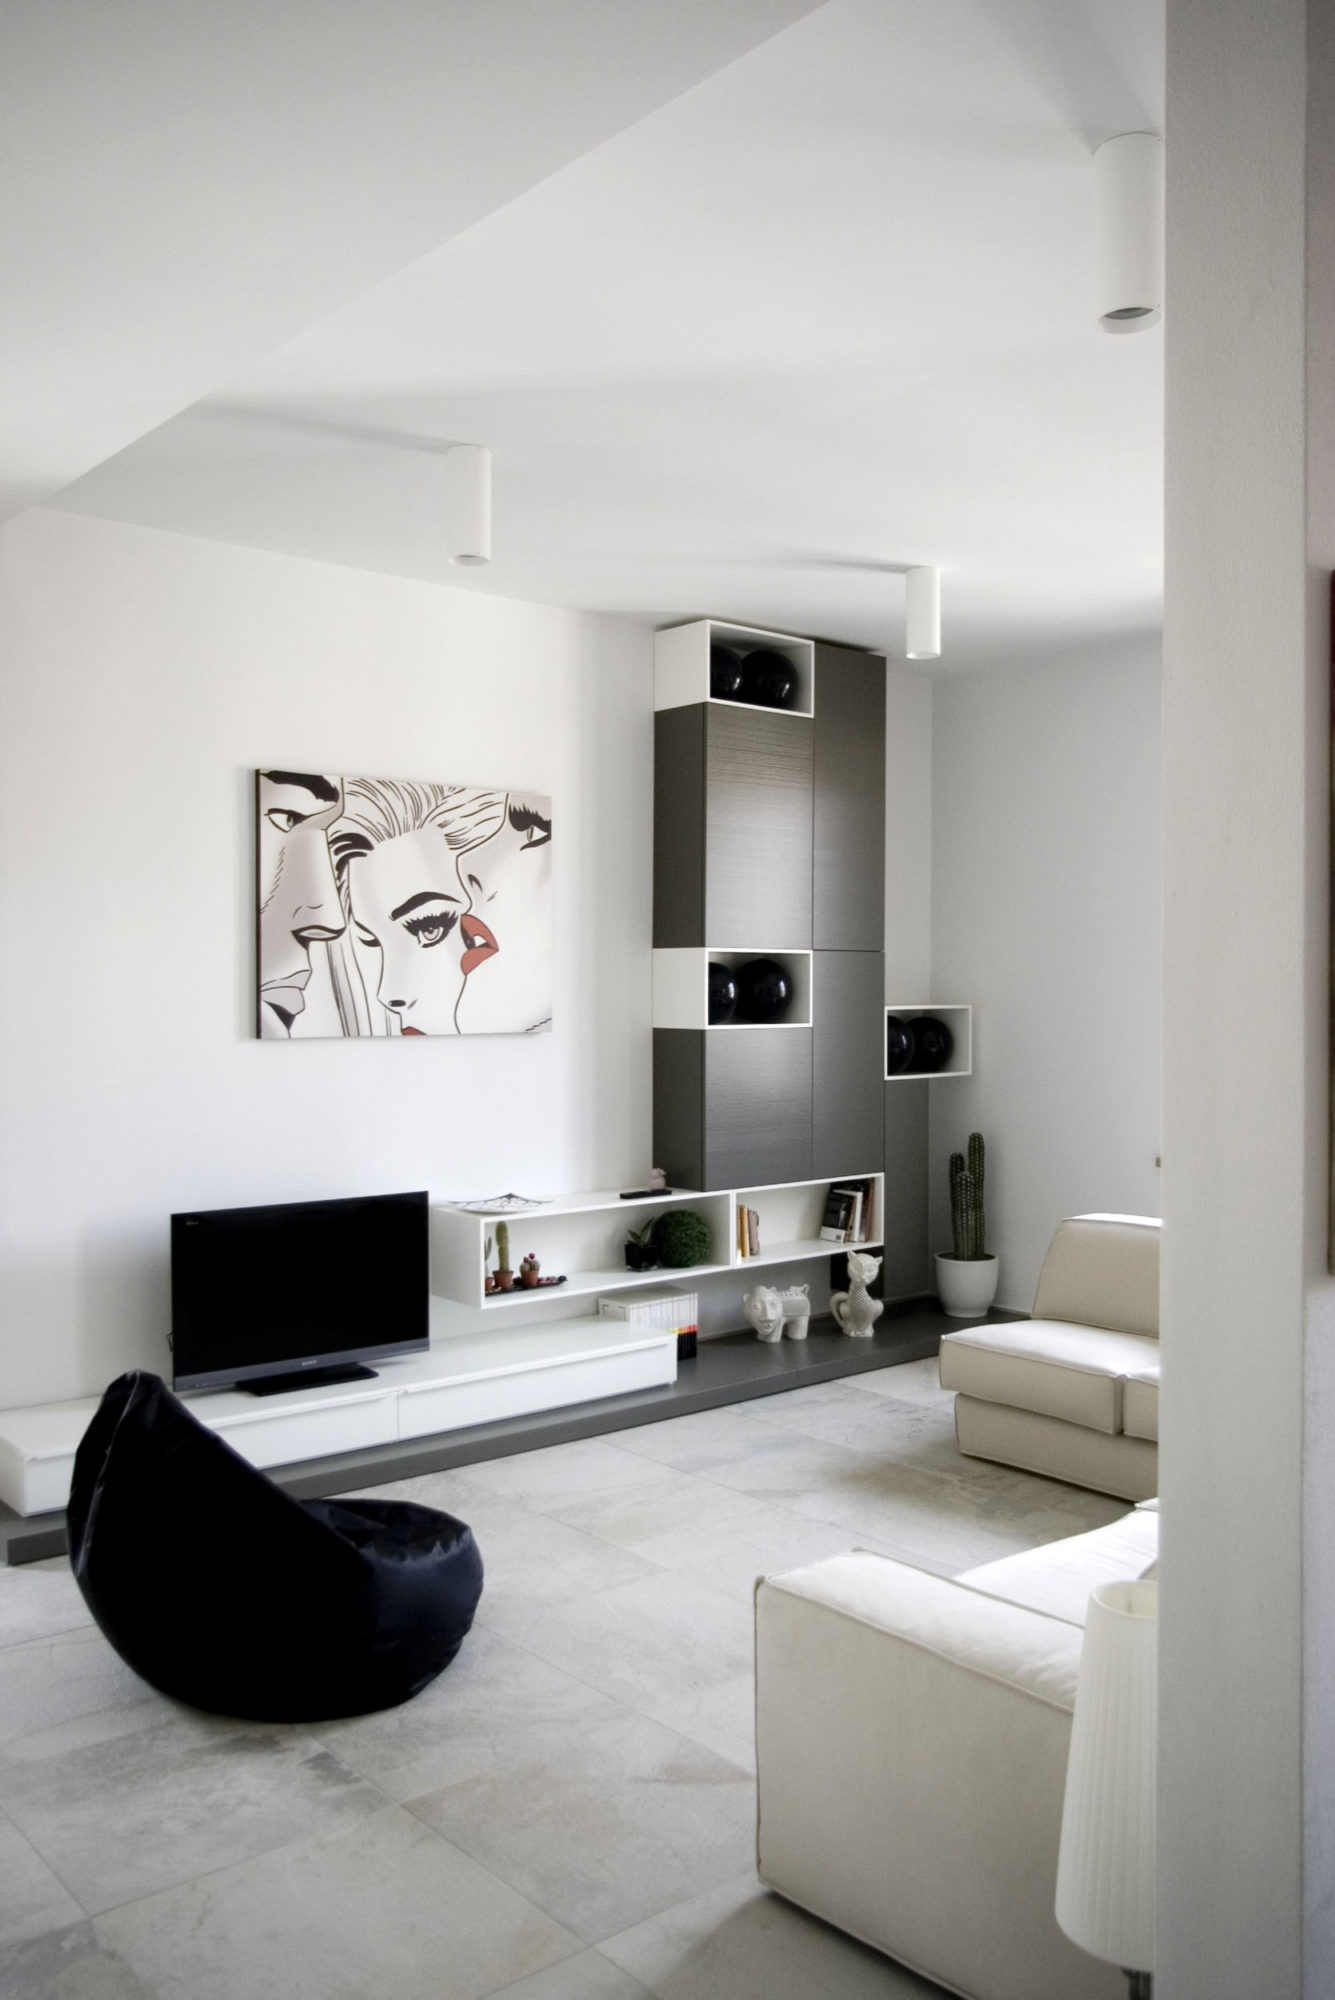 Minimalist interior by msx2 architettura for Modern small apartment interior